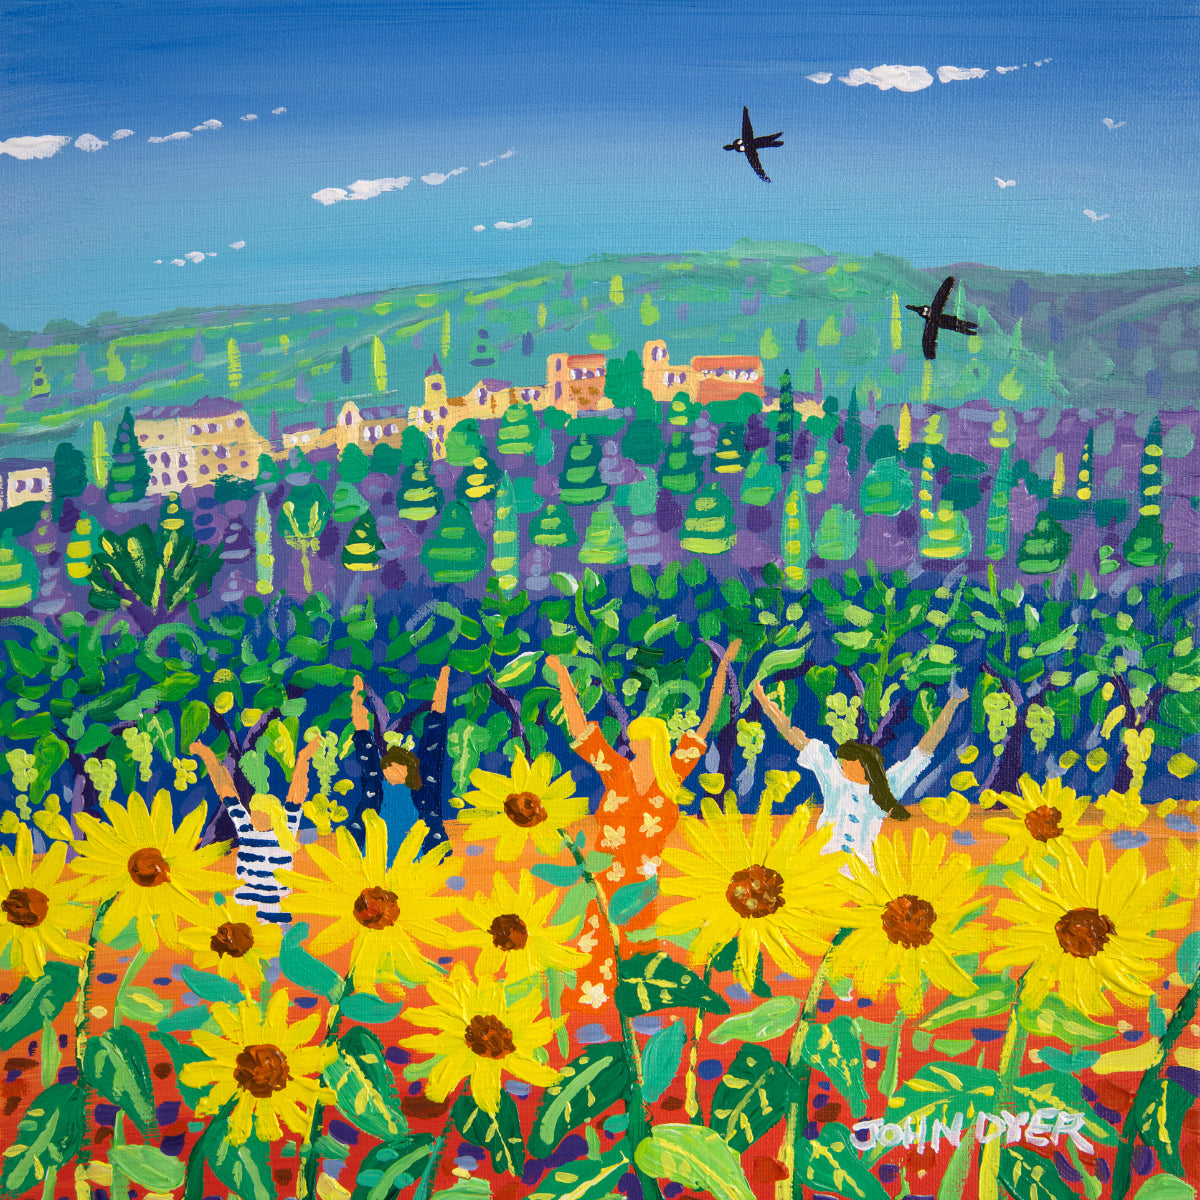 John Dyer Painting. Jumping in the Sunflowers, Ménerbes, Provence